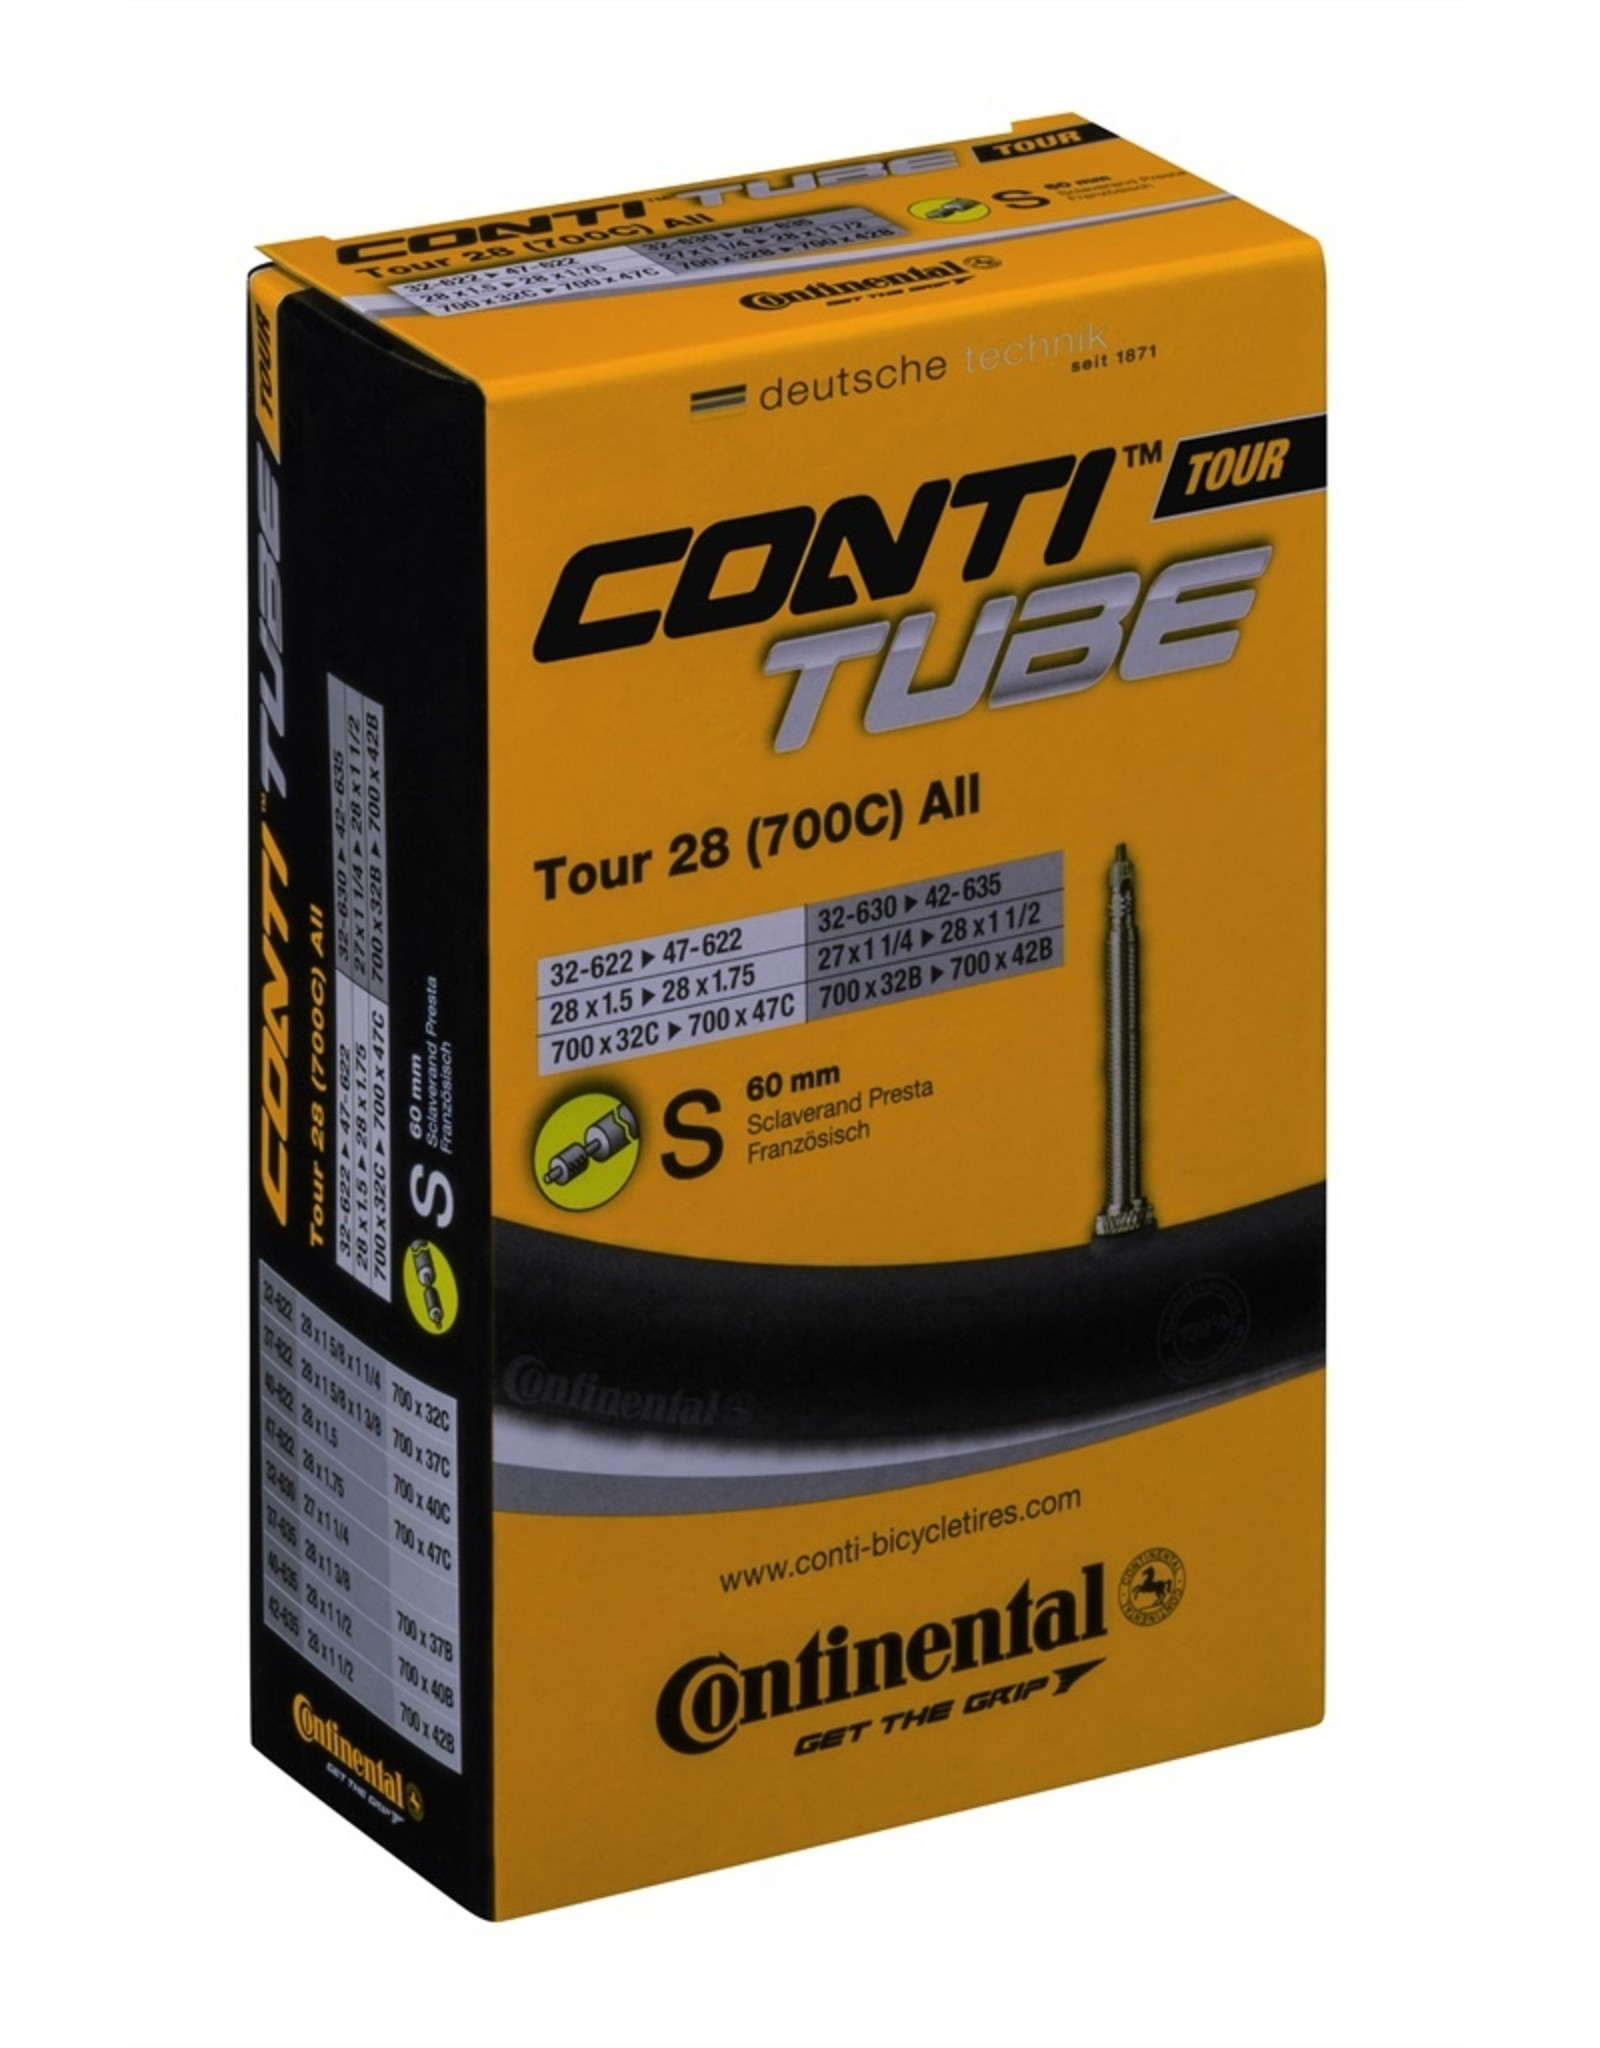 Continental Continental Road Tubes w/ 60mm Presta Valves